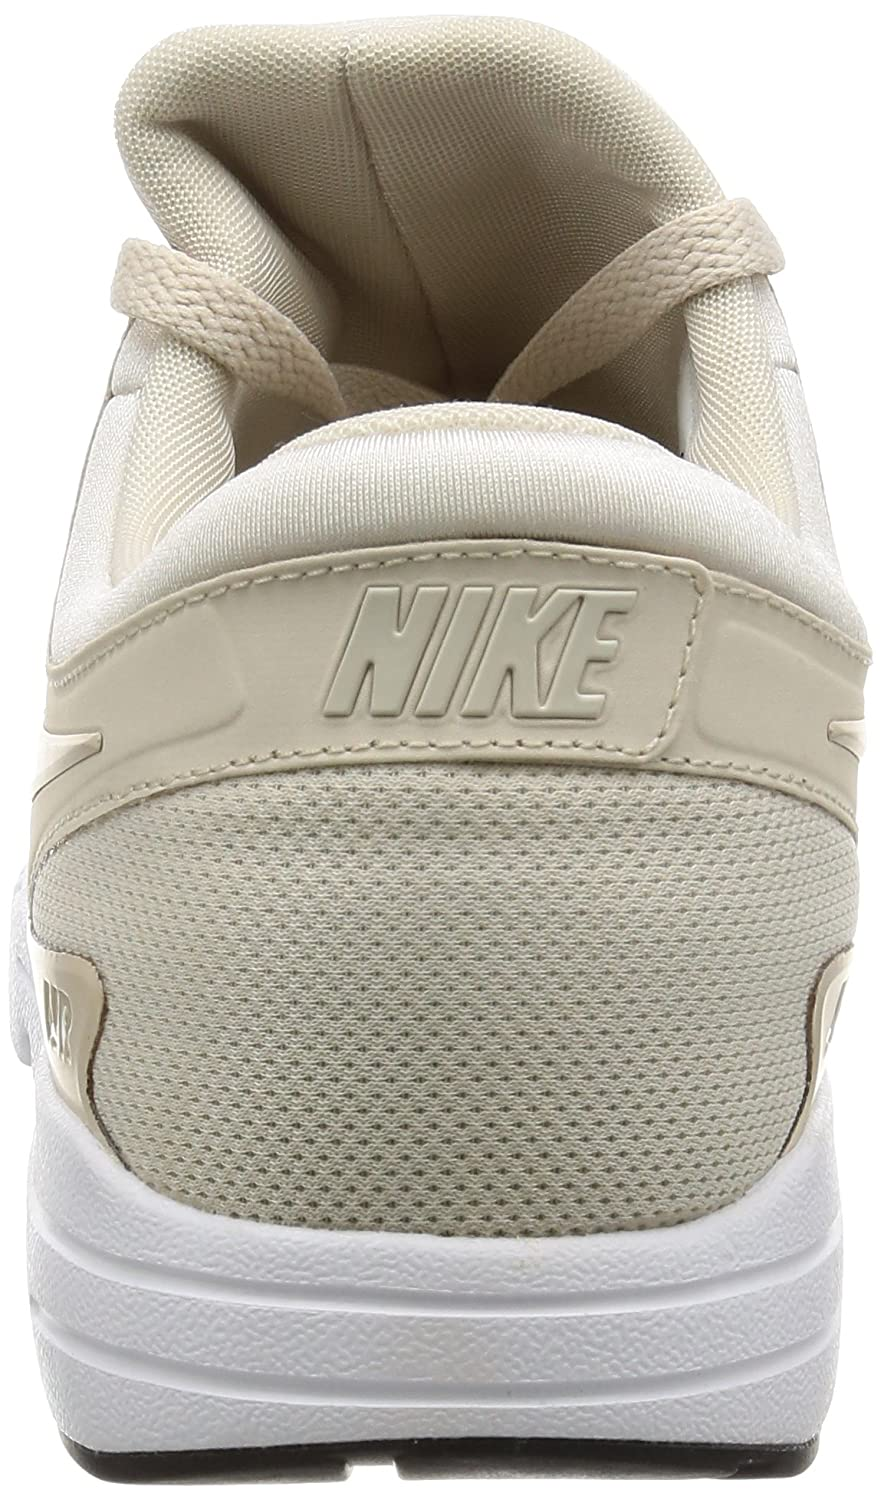 NIKE Women's Air Max Zero Running Shoe B008IG4E9G 8.5 B(M) US|Orewood Brown/Oatmeal